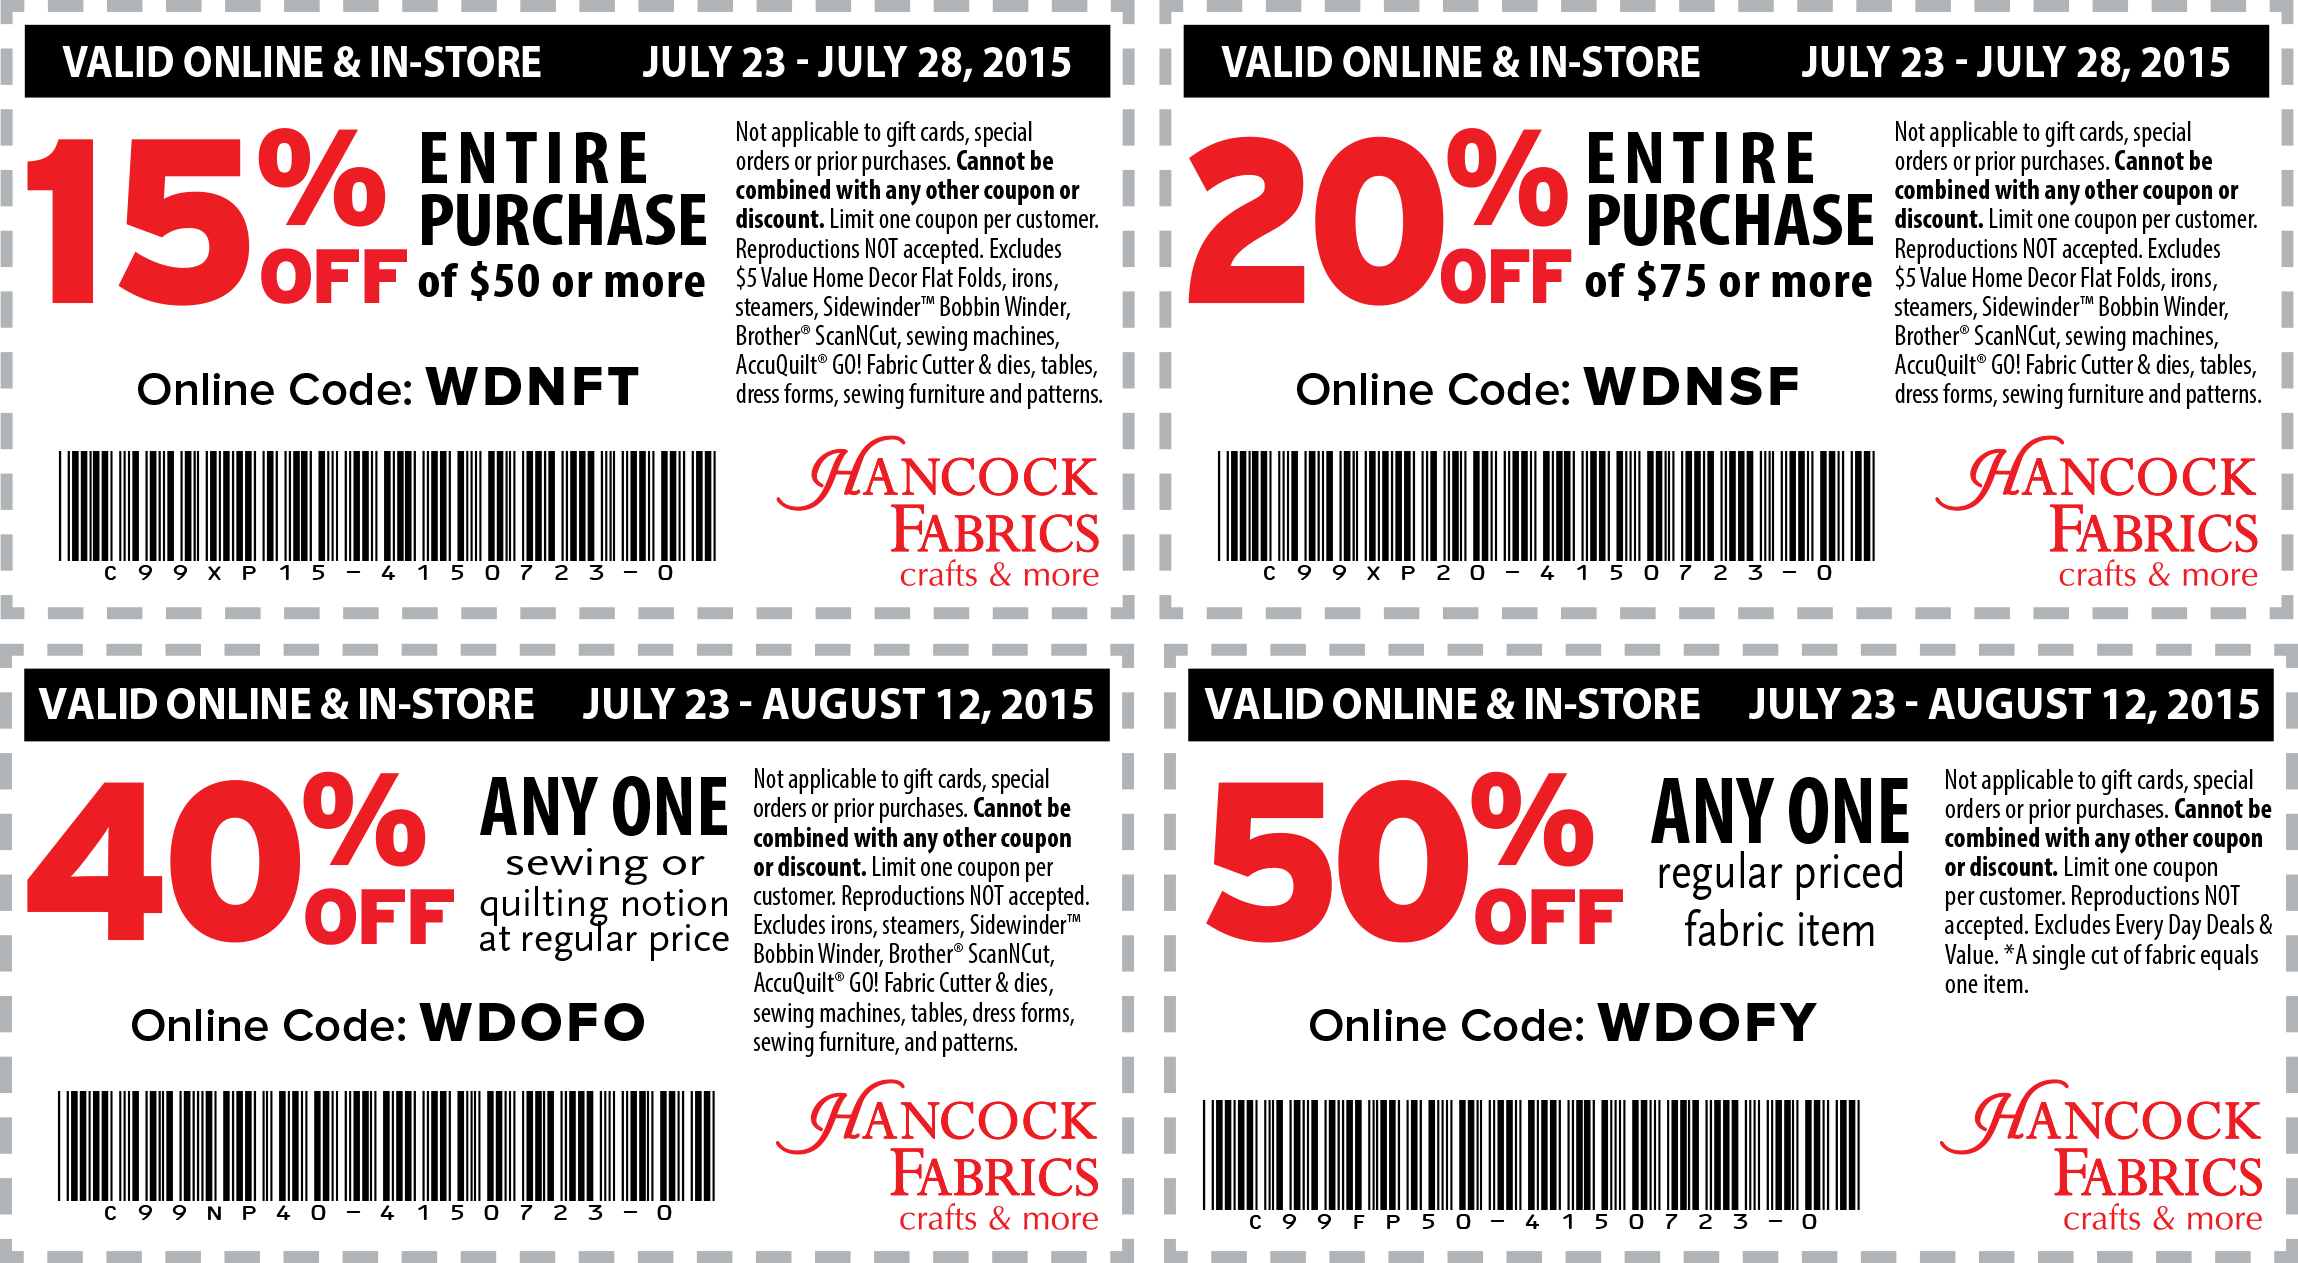 Hancock Fabrics Coupon February 2019 50% off a single item & more at Hancock Fabrics, or online via promo code WDOFY